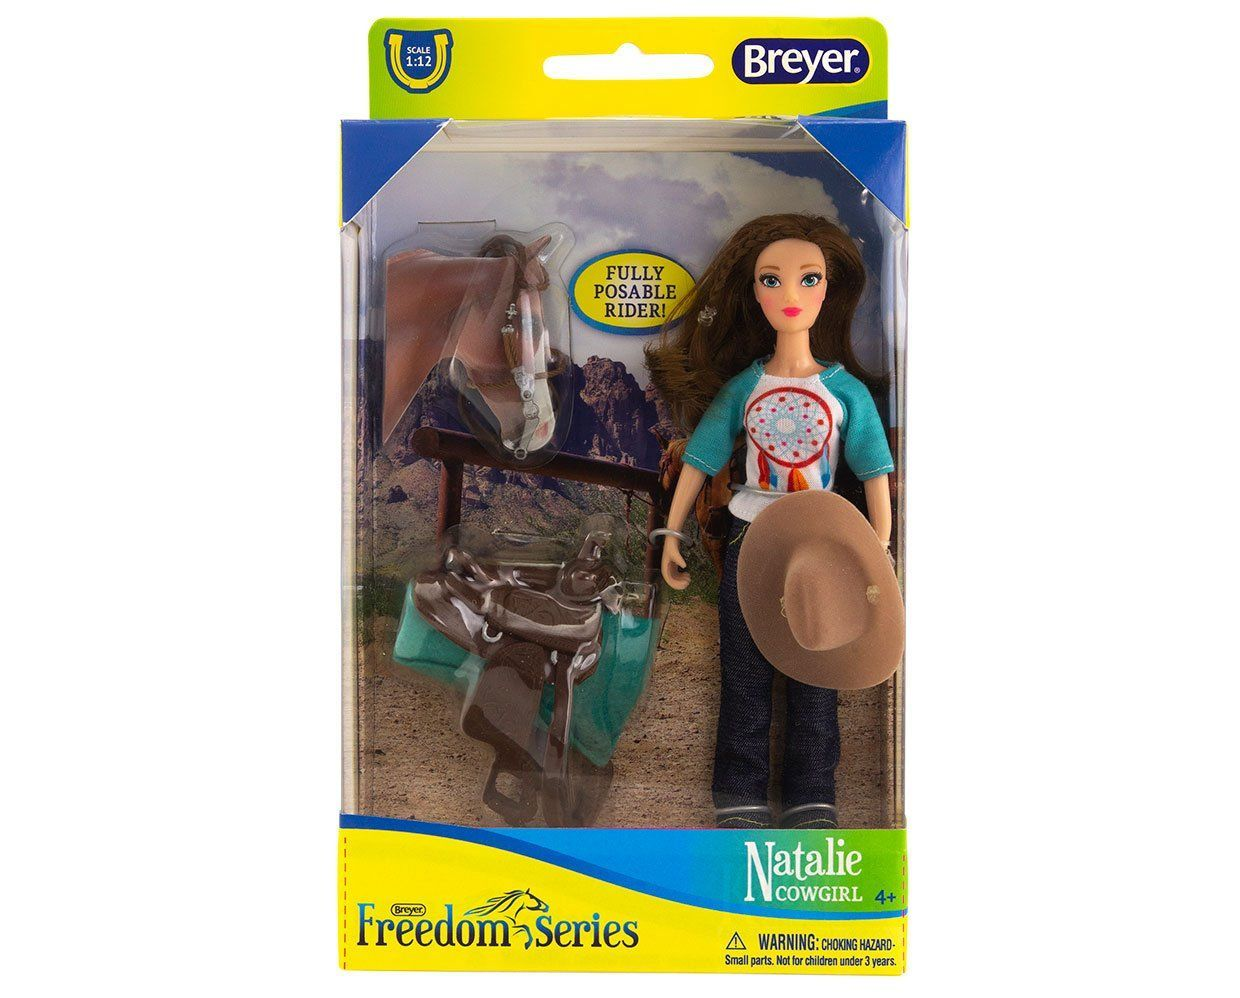 Breyer #62025 Natalie Cowgirl - New Factory Sealed